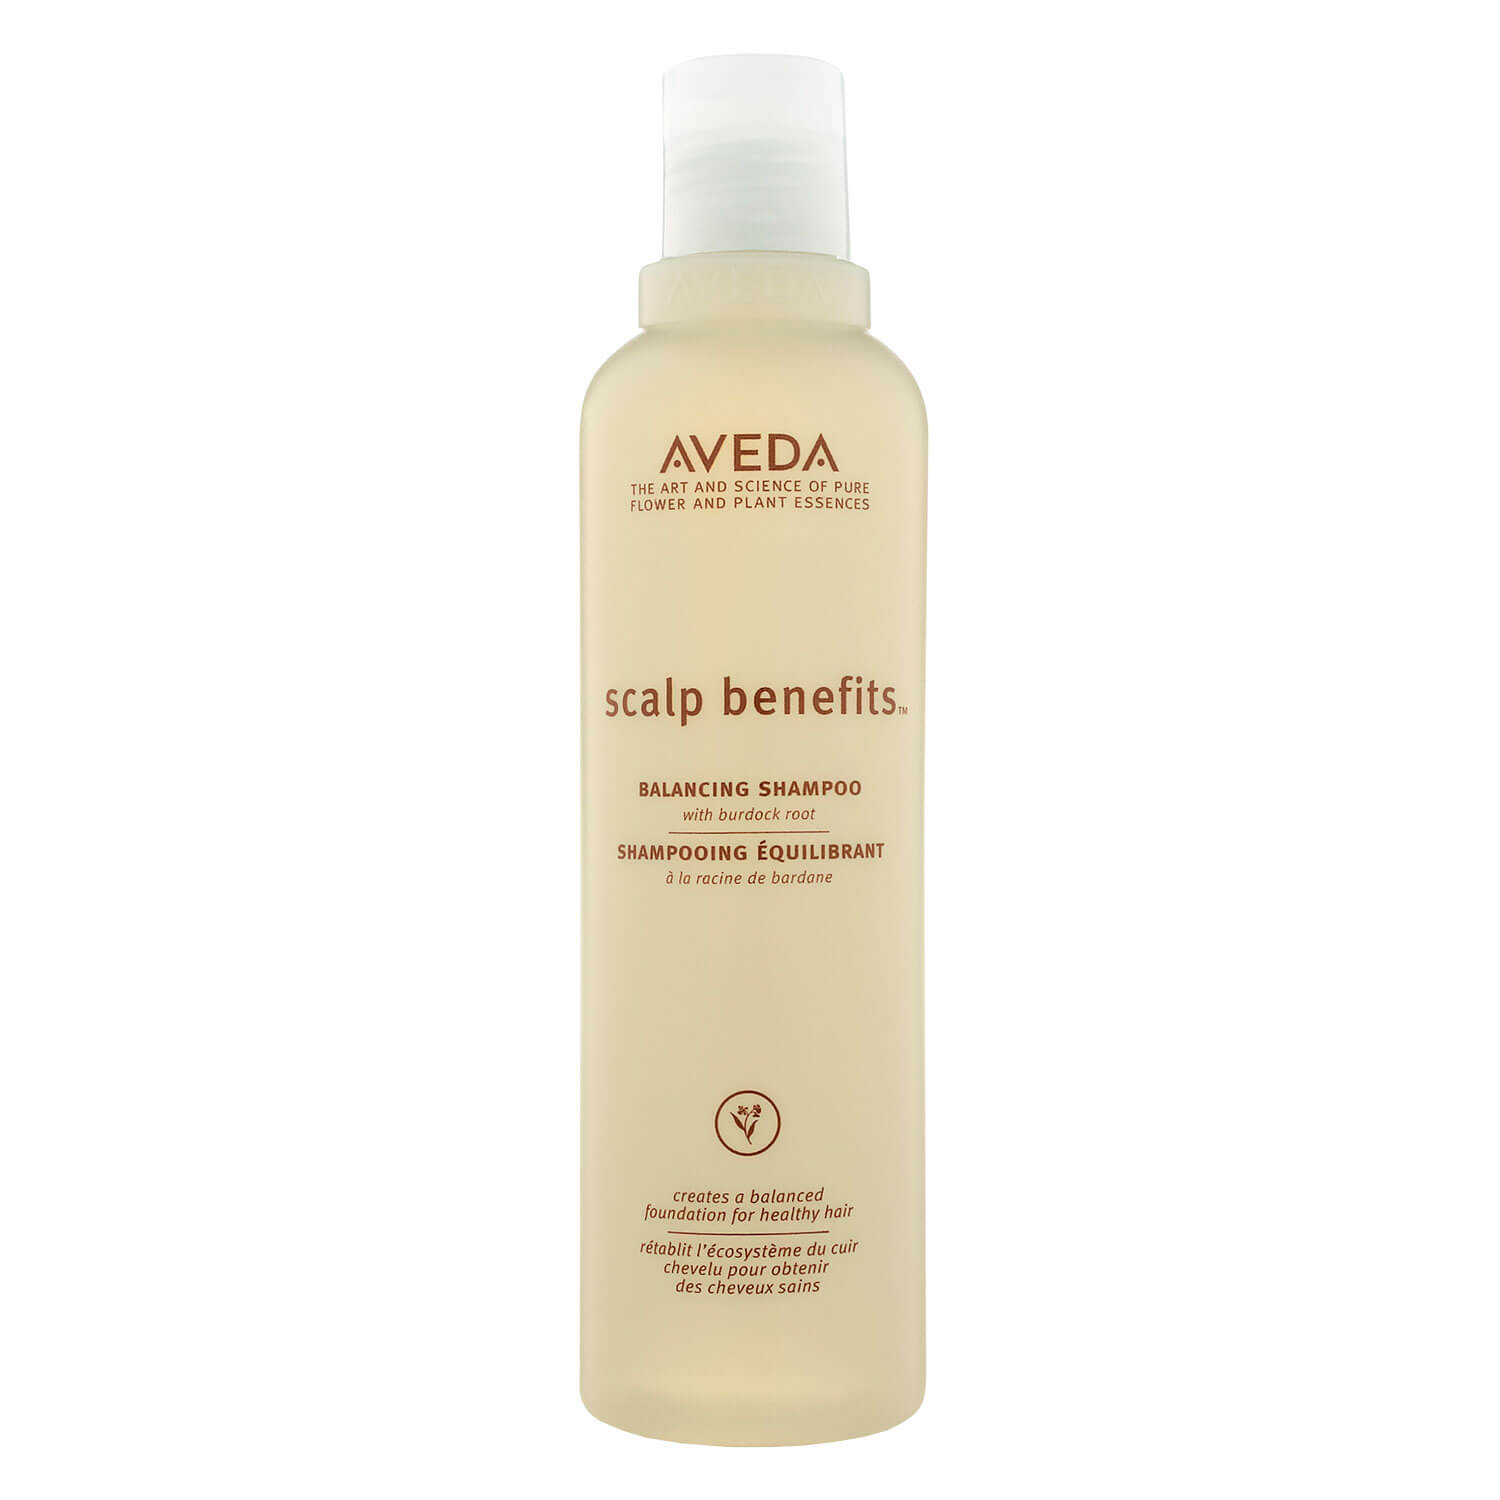 scalp benefits - balancing shampoo - 250ml